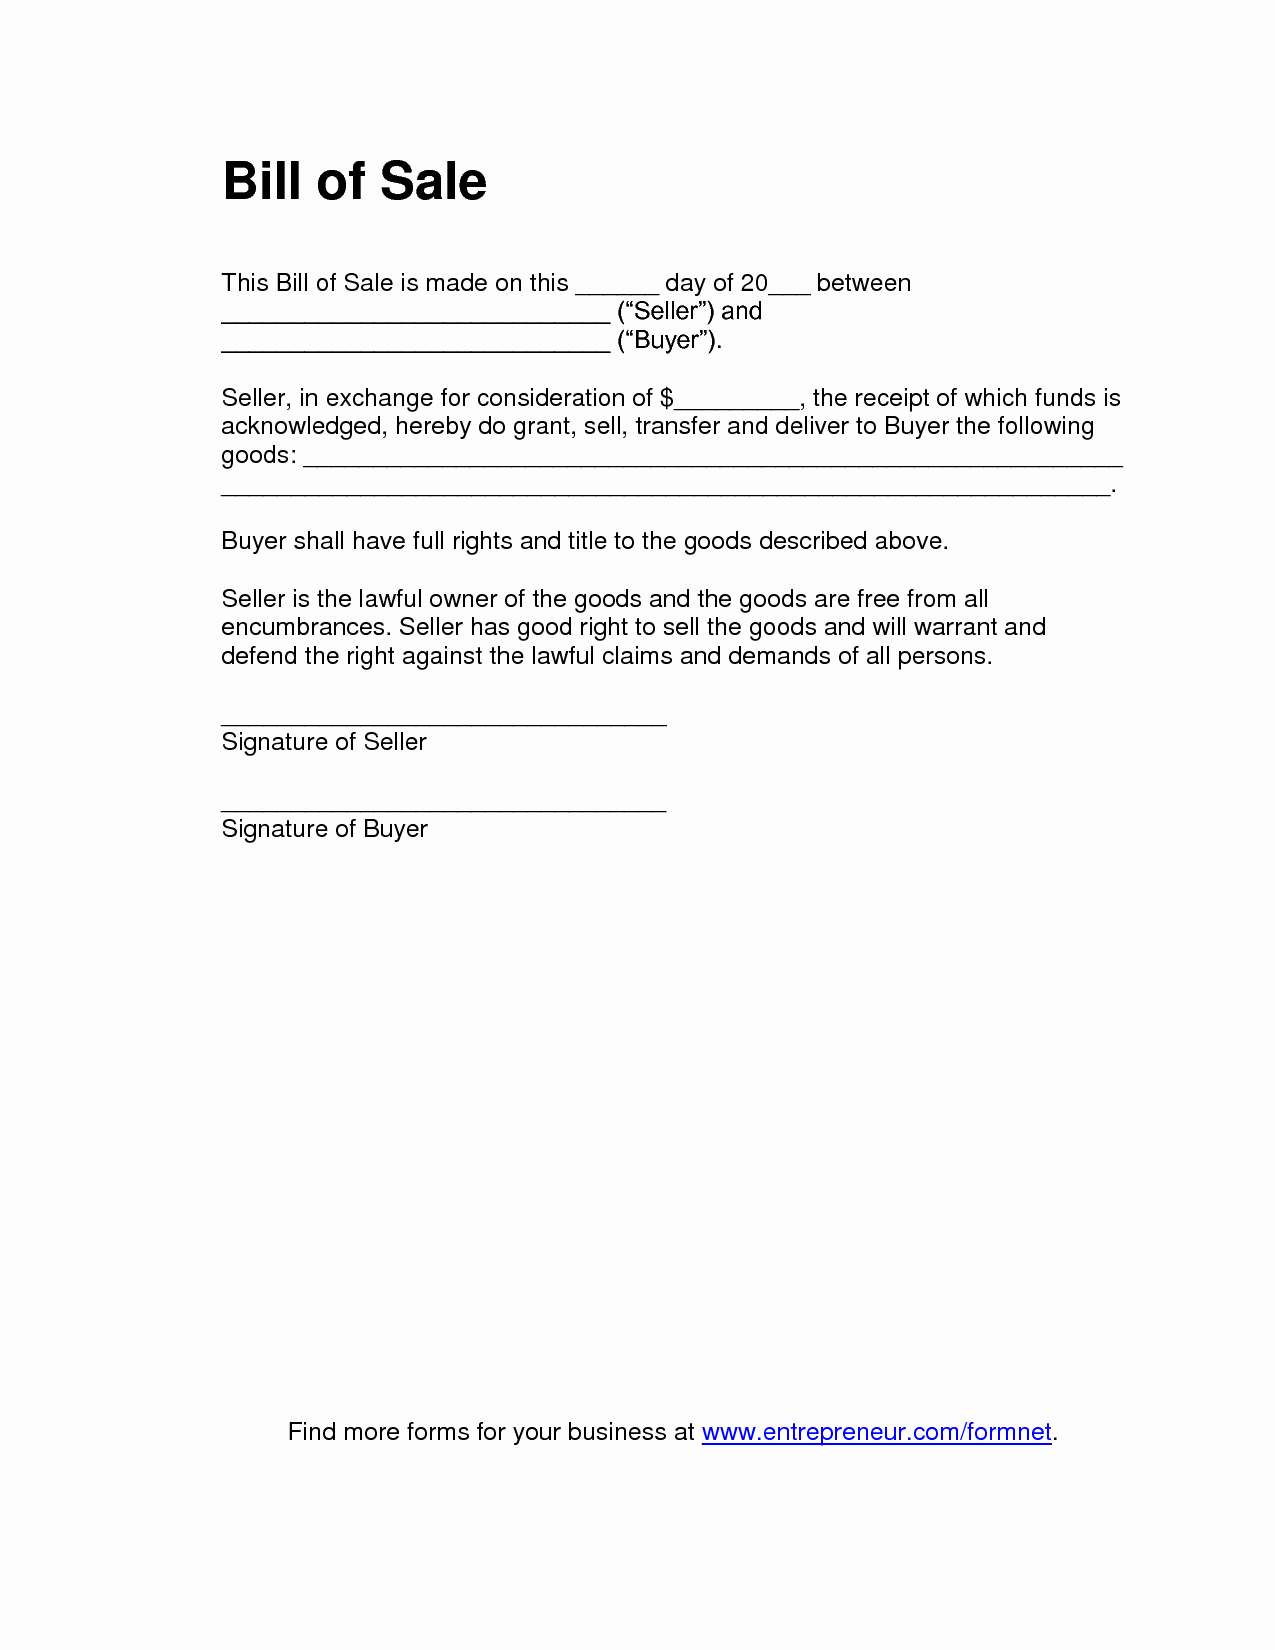 Alabama Vehicle Bill Of Sale Gift New Free Printable Tractor Bill Of Sale form Generic